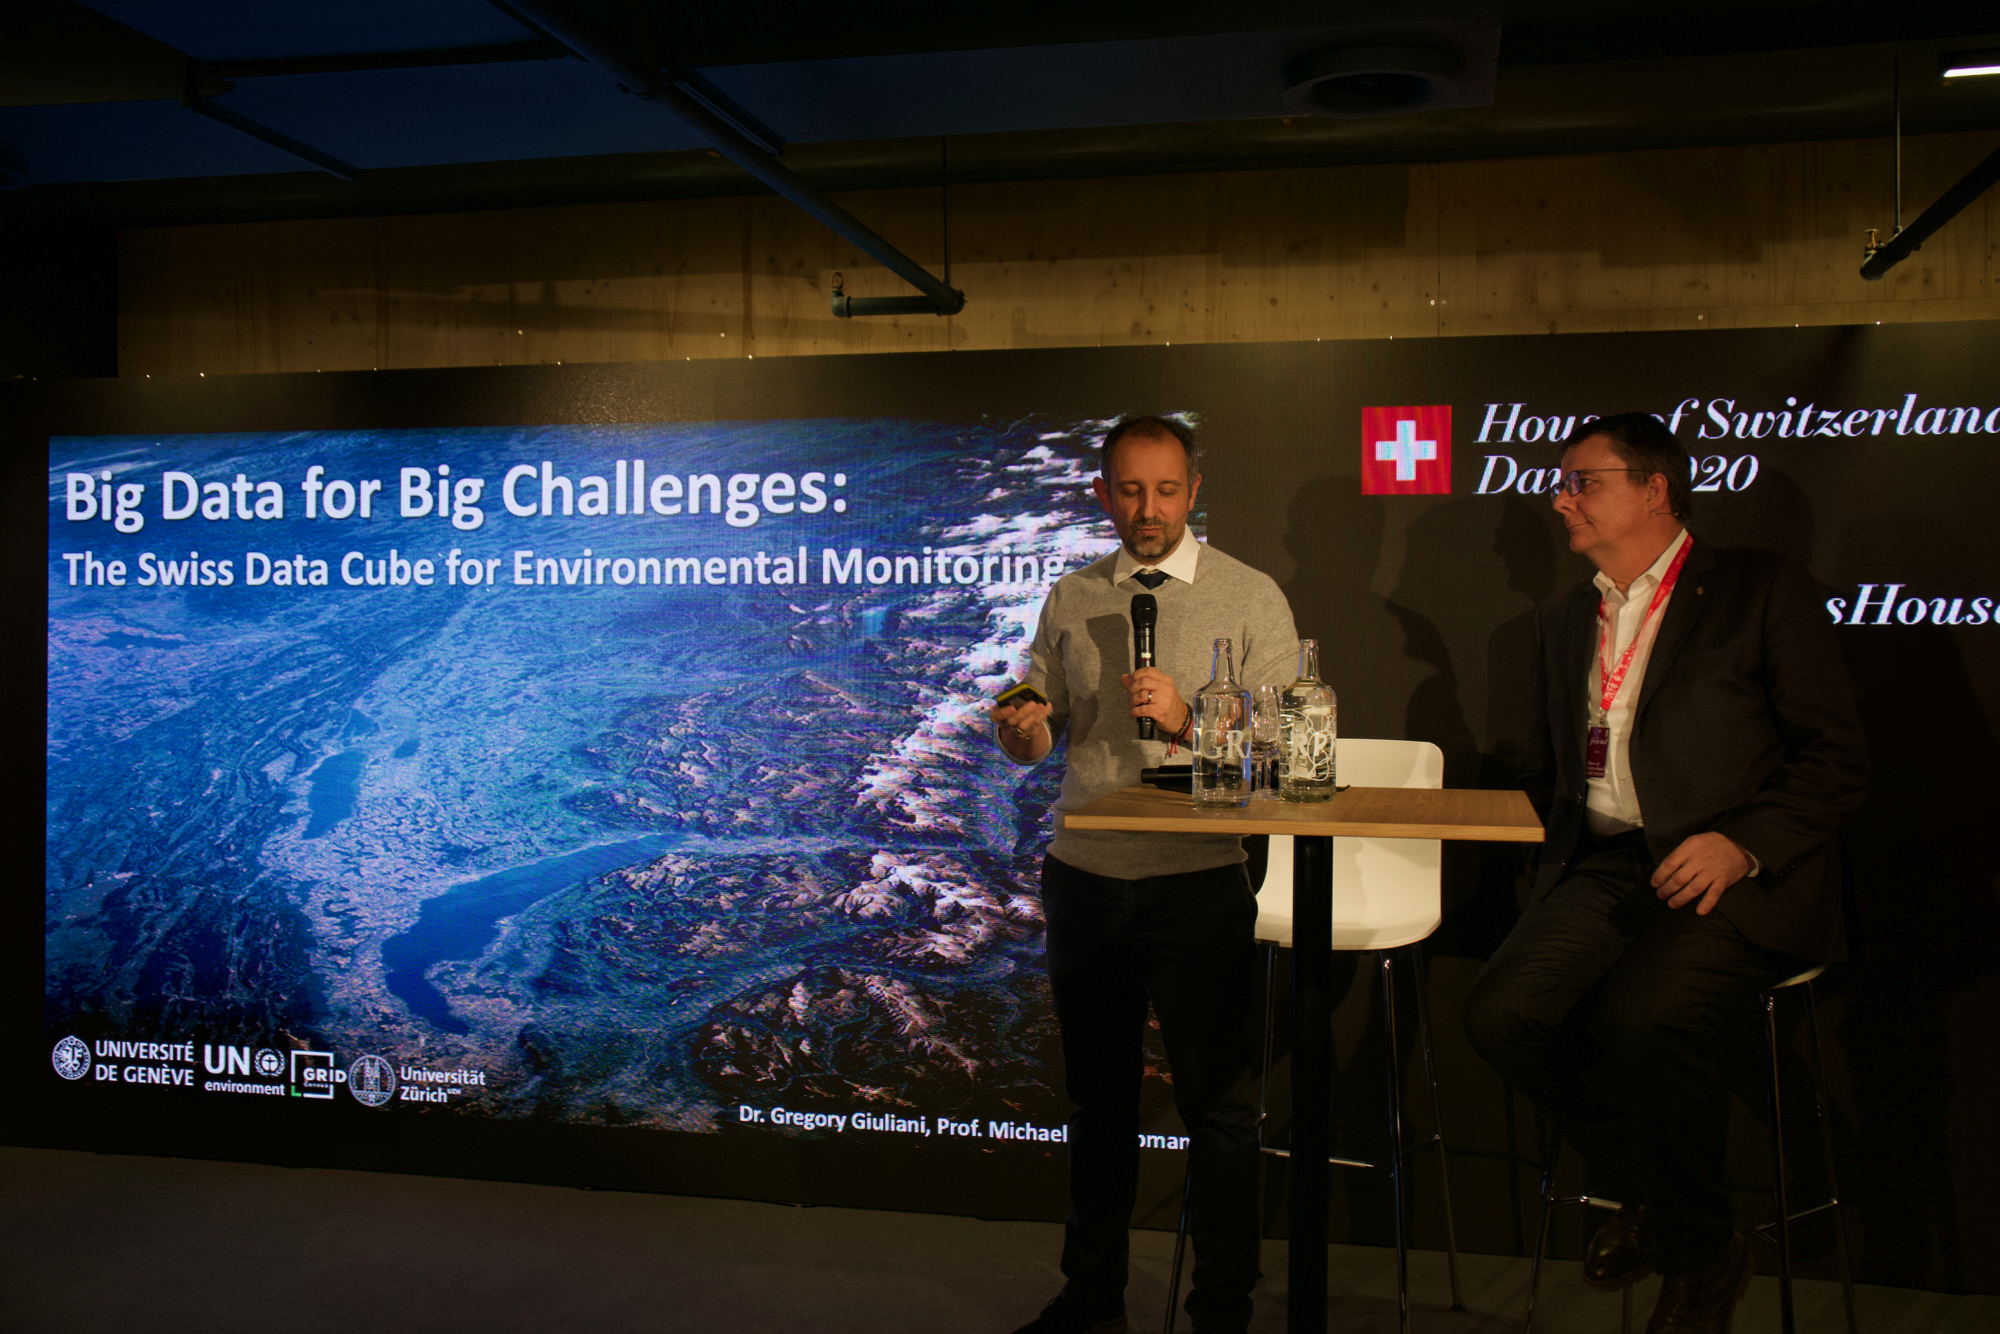 UNEP/GRID-Geneva at the World Economic Forum in Davos - BIG DATA for BIG Challenges: The Swiss Data Cube for Environmental Monitoring